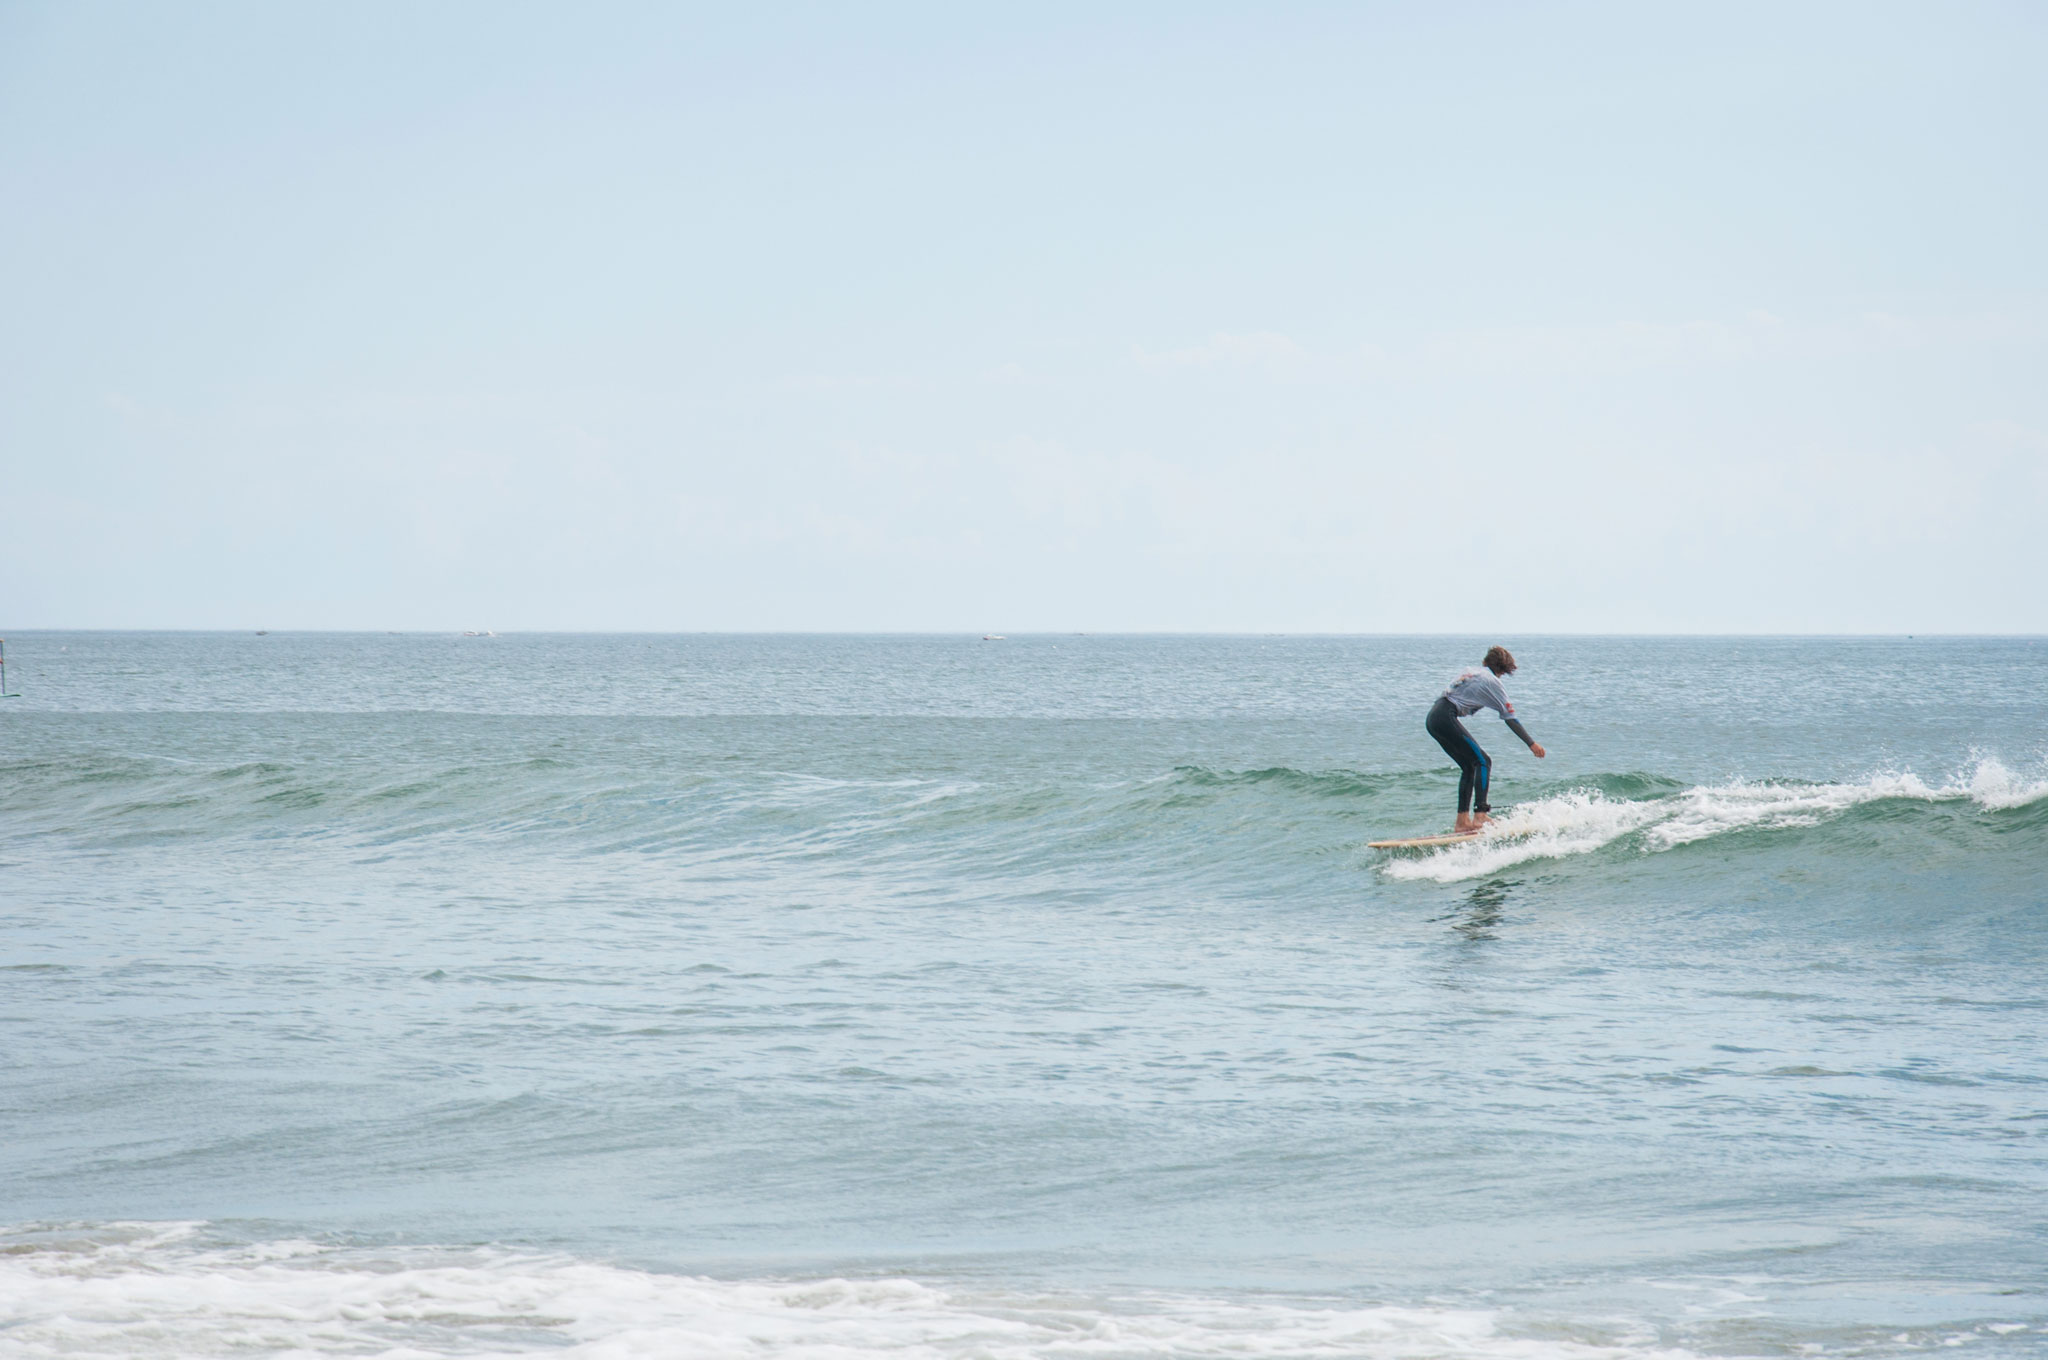 Molly_Surf_2015__0180-2